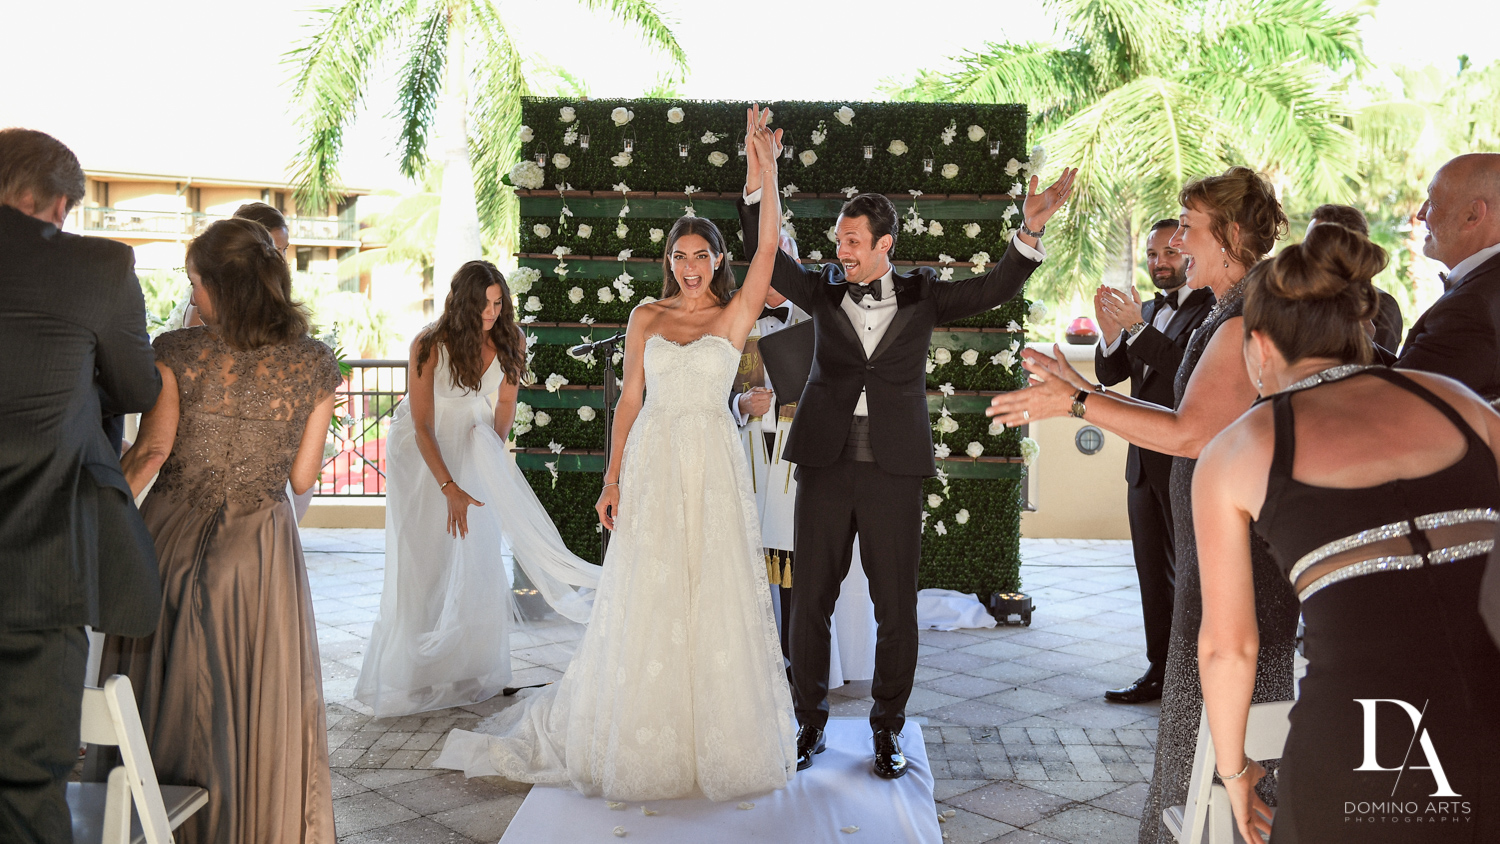 Just Married at Stunning Golf Course Wedding at PGA National Palm Beach by Domino Arts Photography